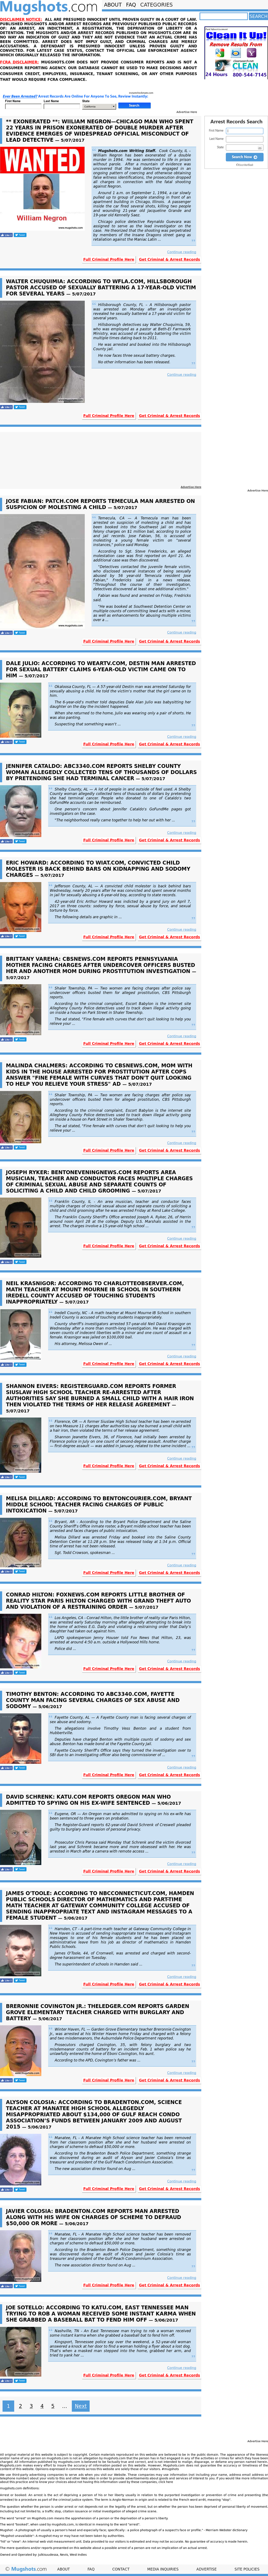 Mugshots Competitors, Revenue and Employees - Owler Company